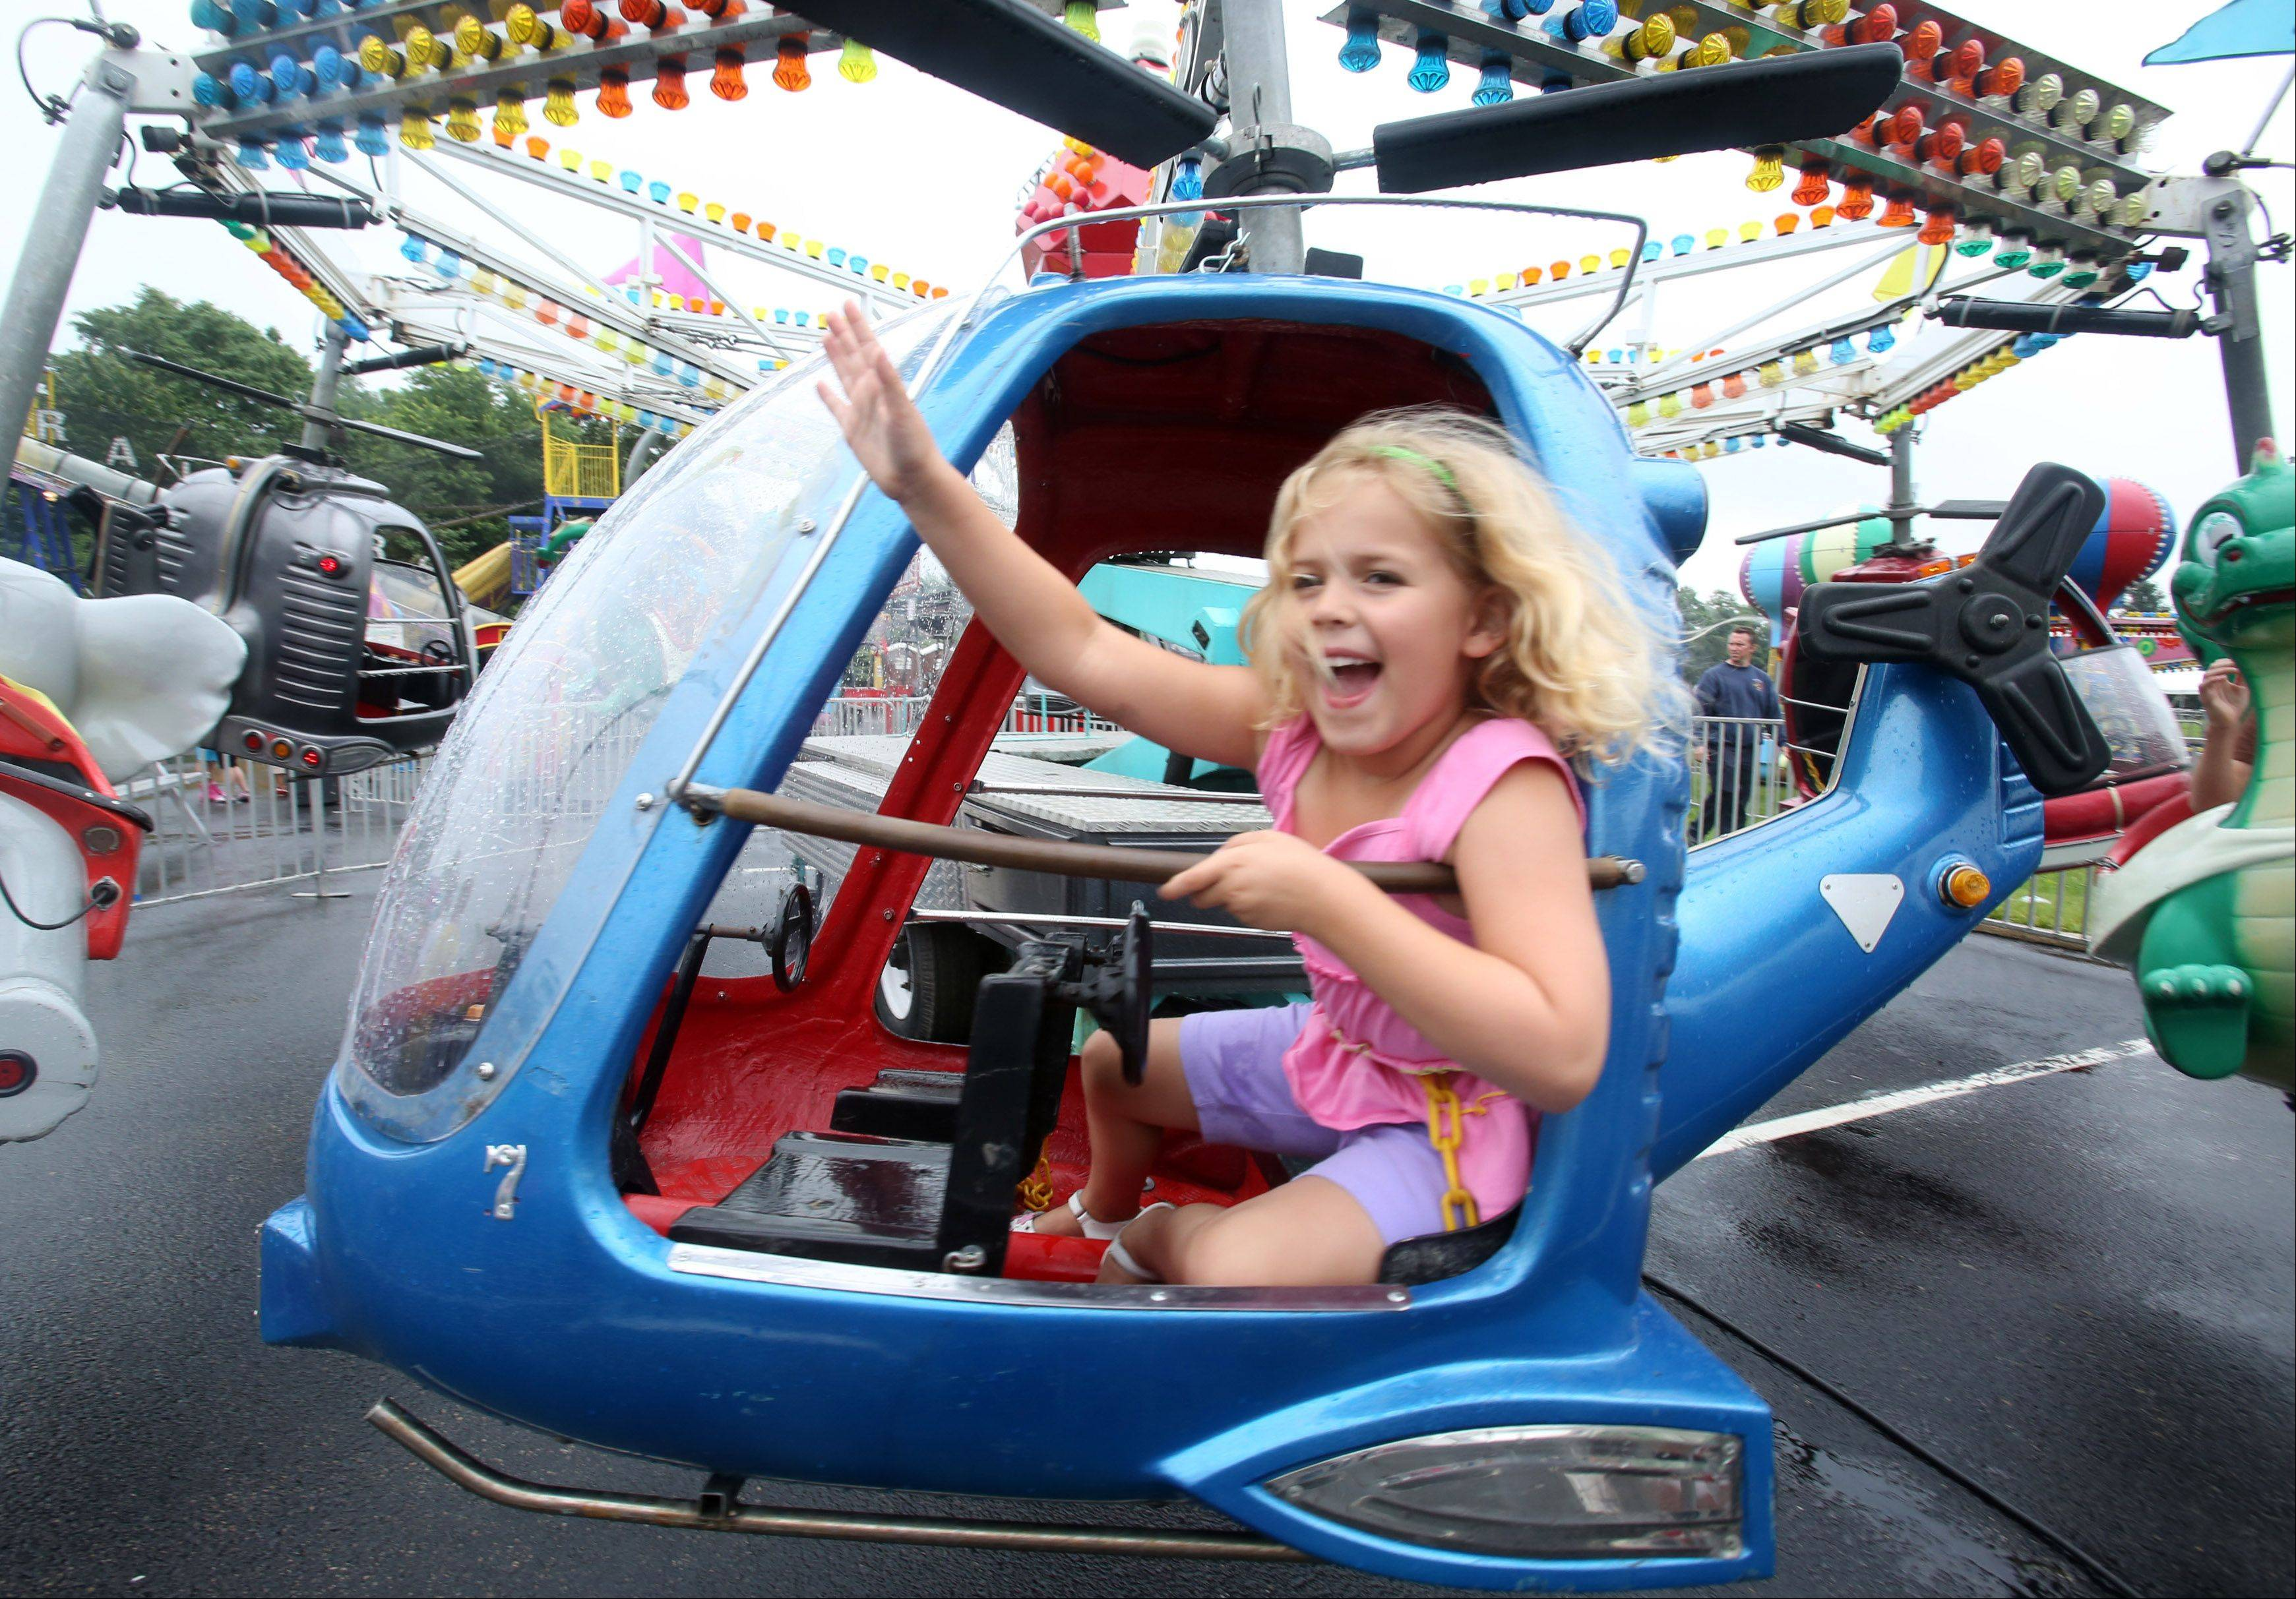 Savah Blume, 6, of Palatine waves to her brother Kevin, 9, and her mother Julie as she rides the helicopter during the first day of Palatine Jaycees' 56th annual Hometown Fest at Community Park during a special needs carnival on Wednesday.